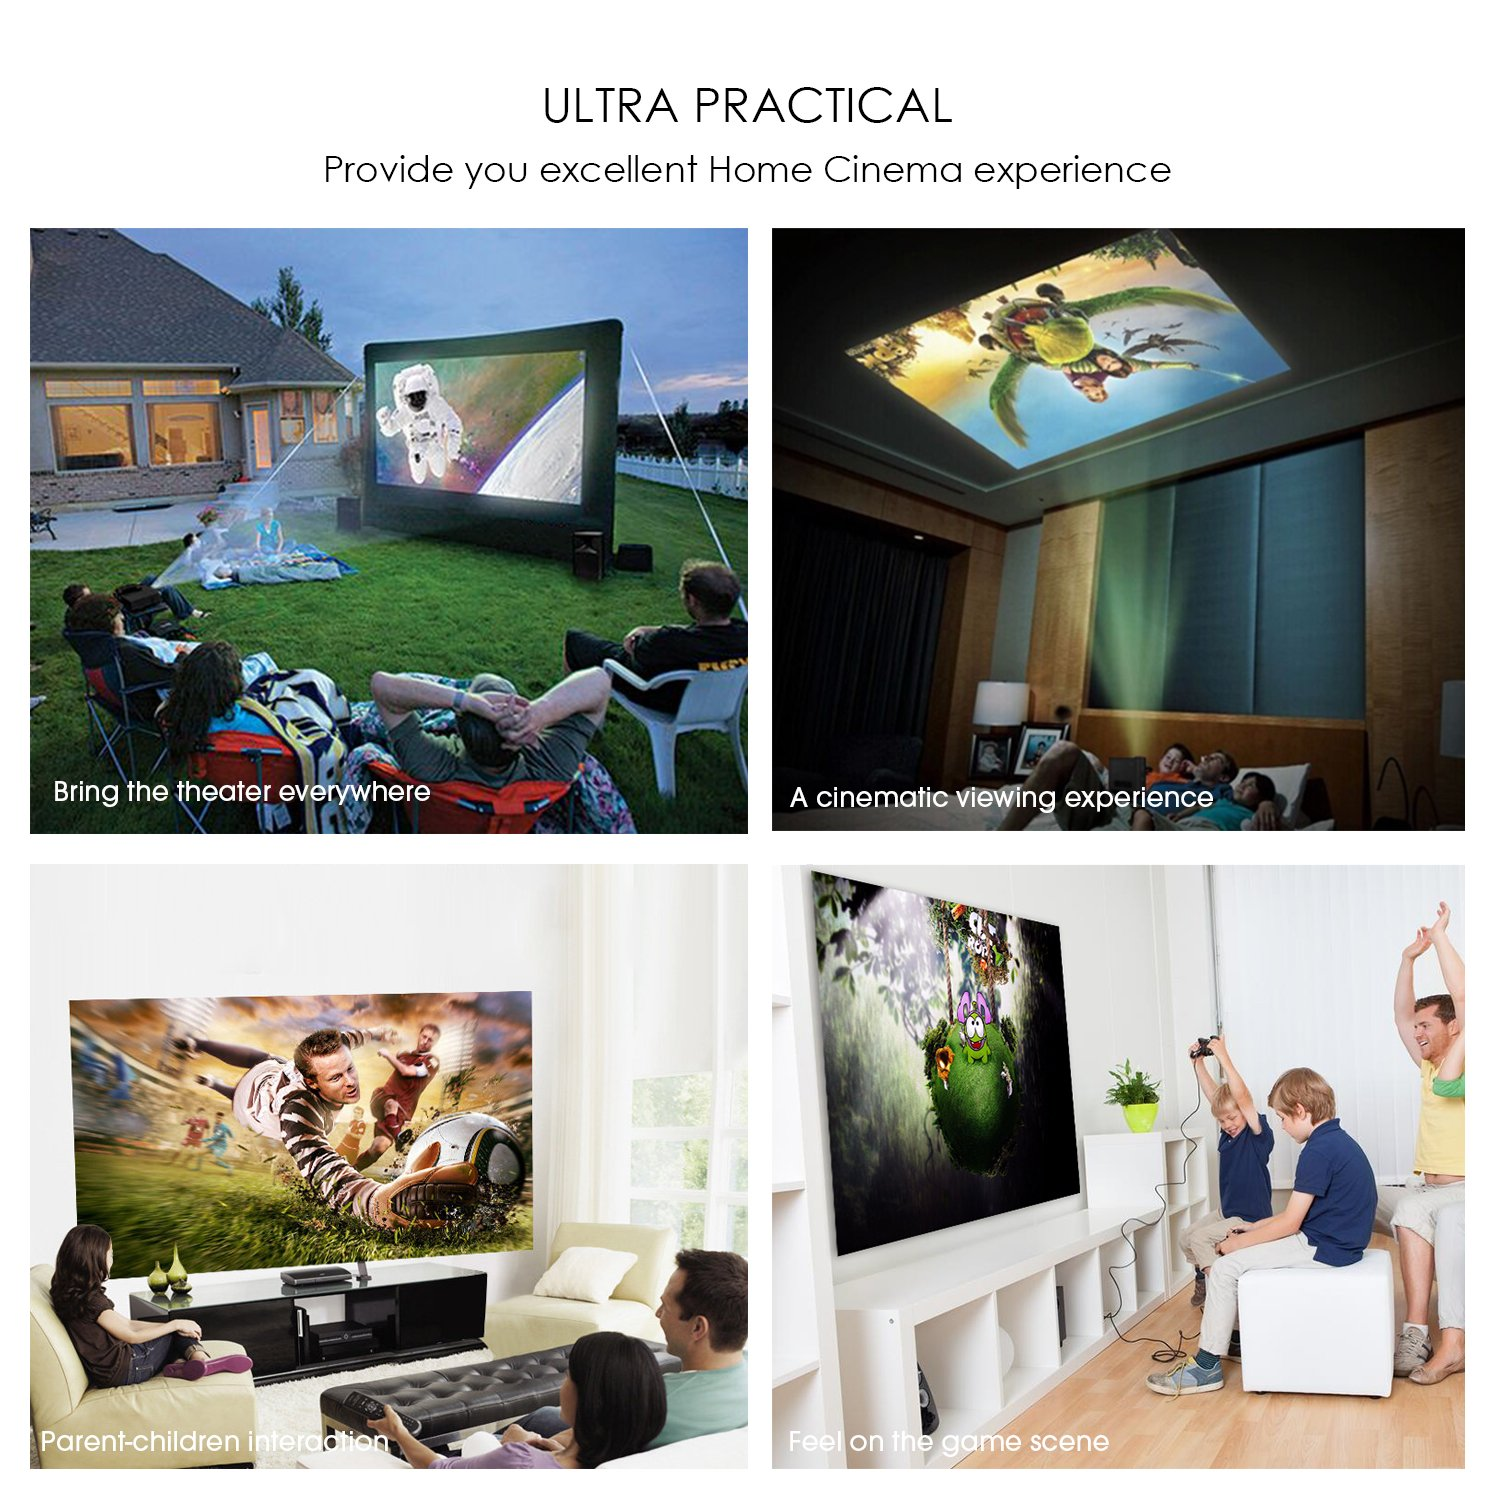 DBPOWER T21 Upgraded LED Projector,1800 Lumens Multimedia Home Theater Video Projector Supporting 1080P, HDMI, USB, SD Card, VGA, AV for Home Cinema, TV, Laptops, Games, Smartphones & iPad by DBPOWER (Image #7)